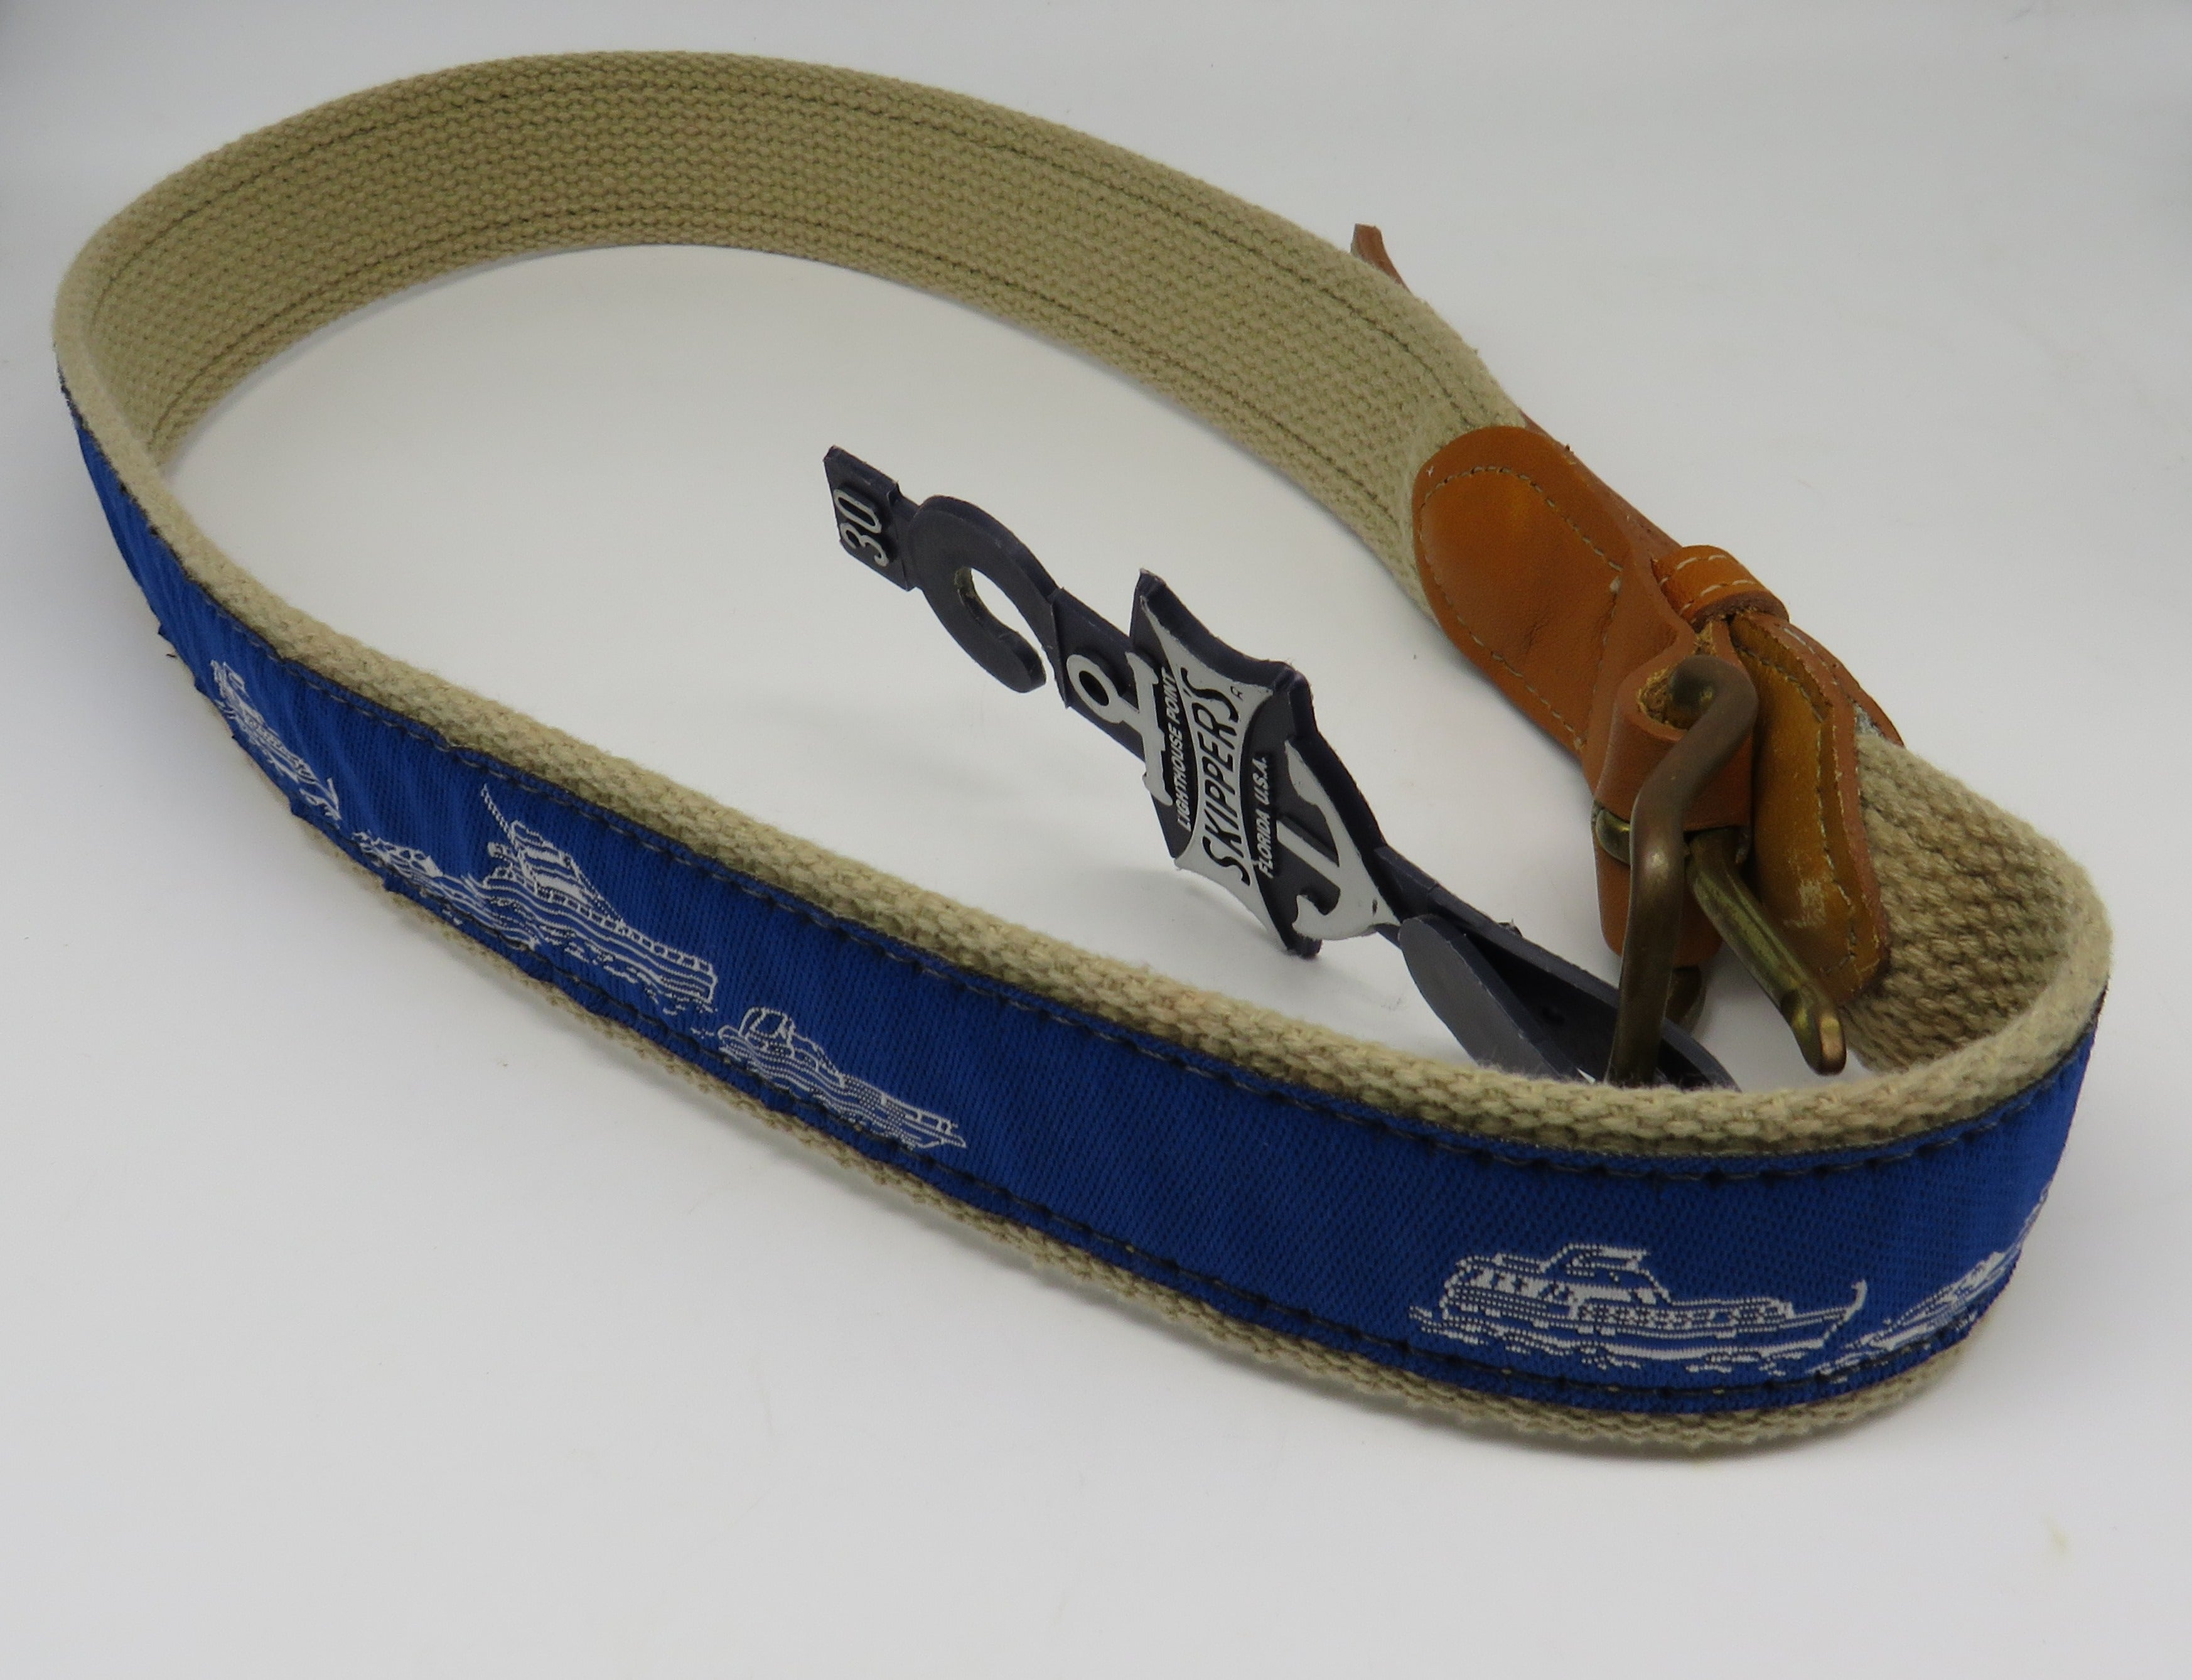 Nautical Belt #56 Power Boats Belt OBSOLETE Design Size 50